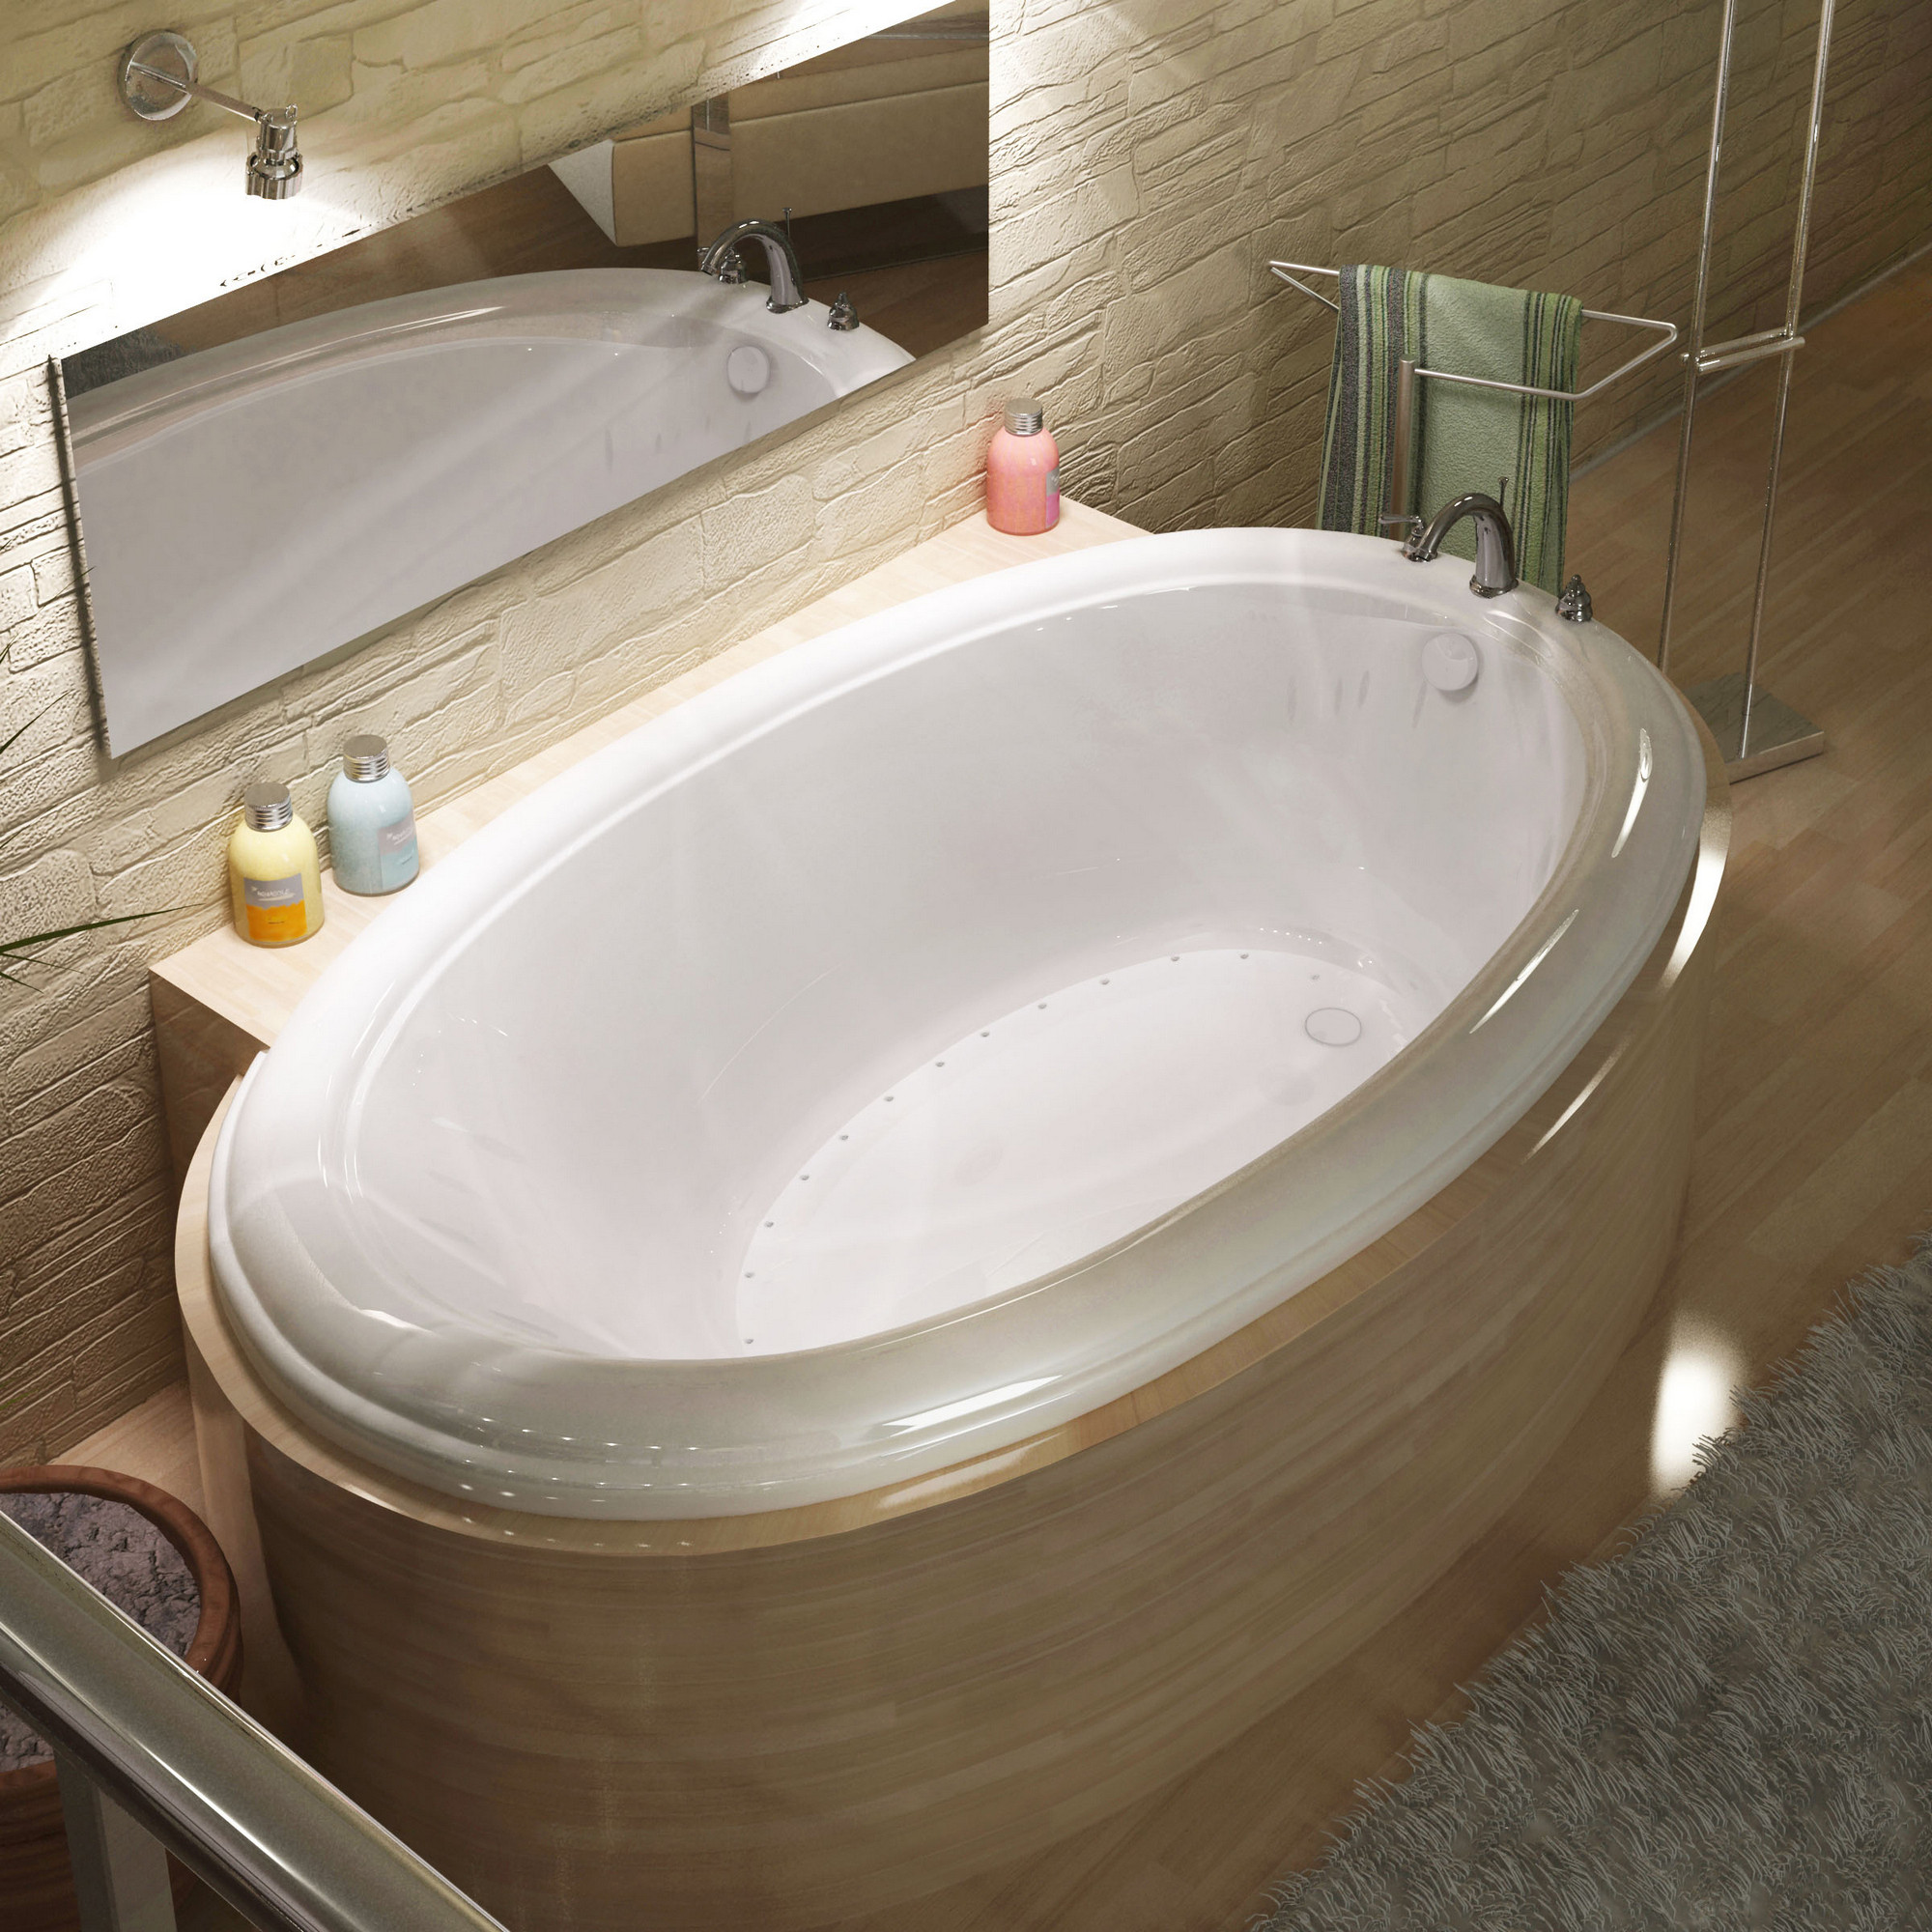 MediTub 4478PCAR Atlantis Petite Oval Air Jetted Bathtub With Right Blower